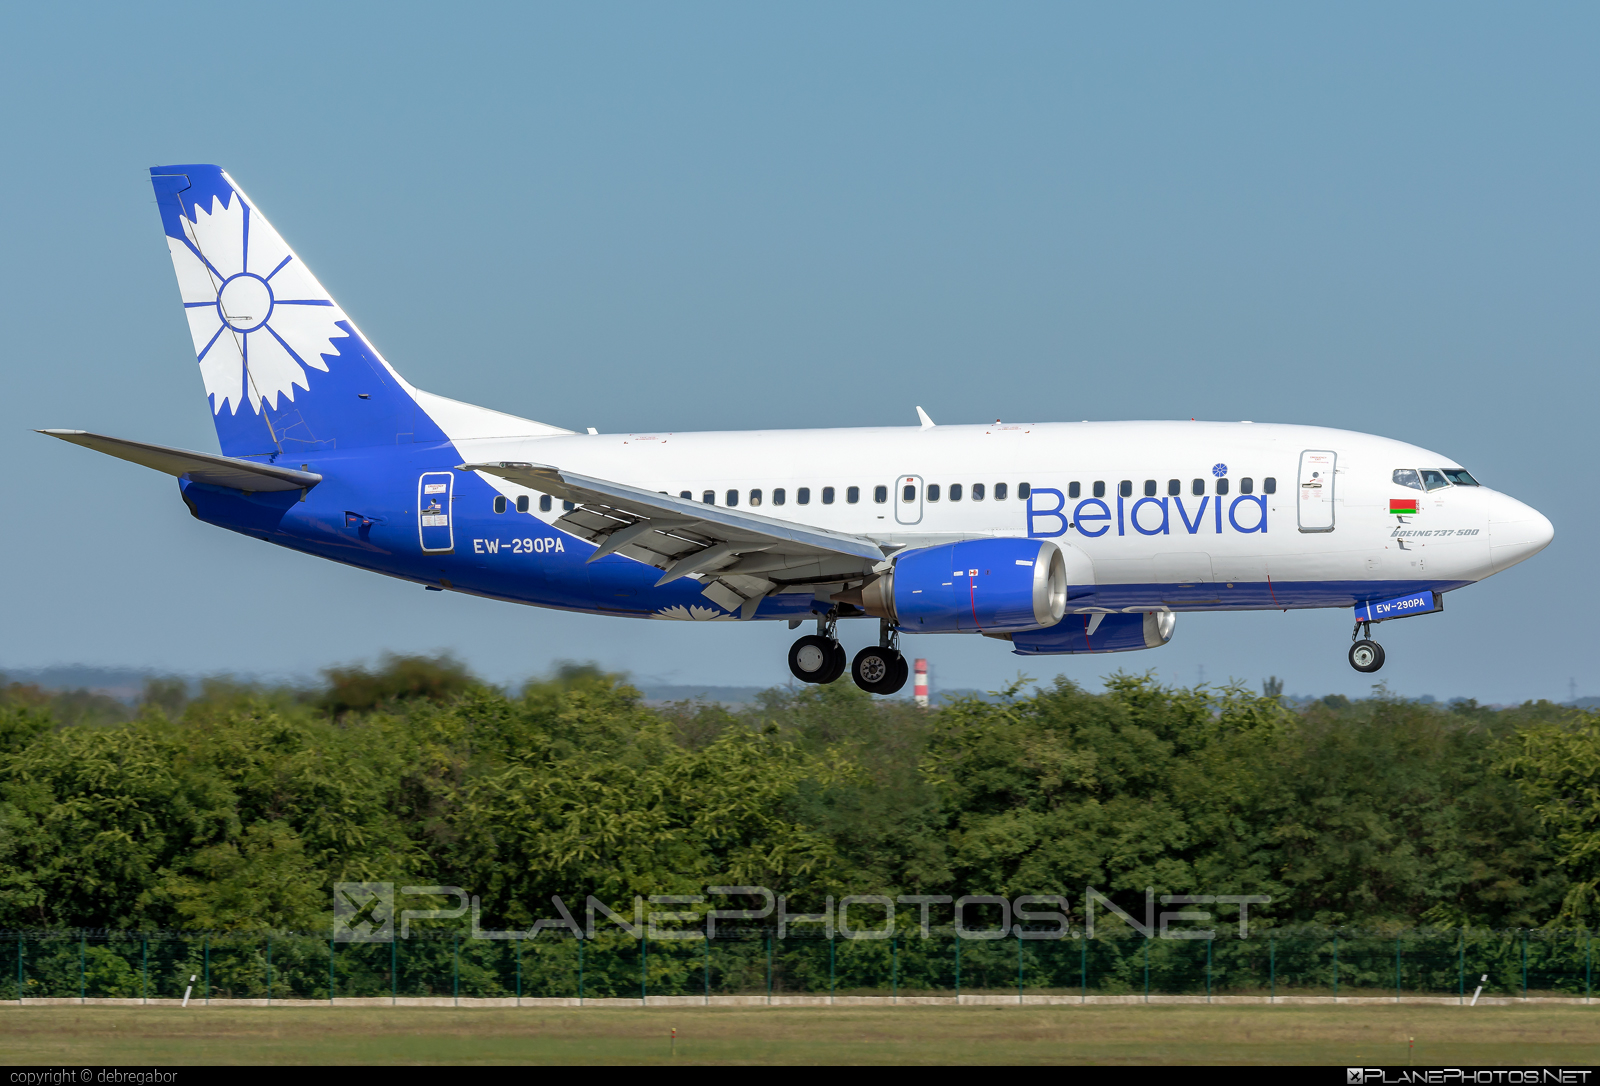 Boeing 737-500 - EW-290PA operated by Belavia Belarusian Airlines #b737 #belavia #boeing #boeing737